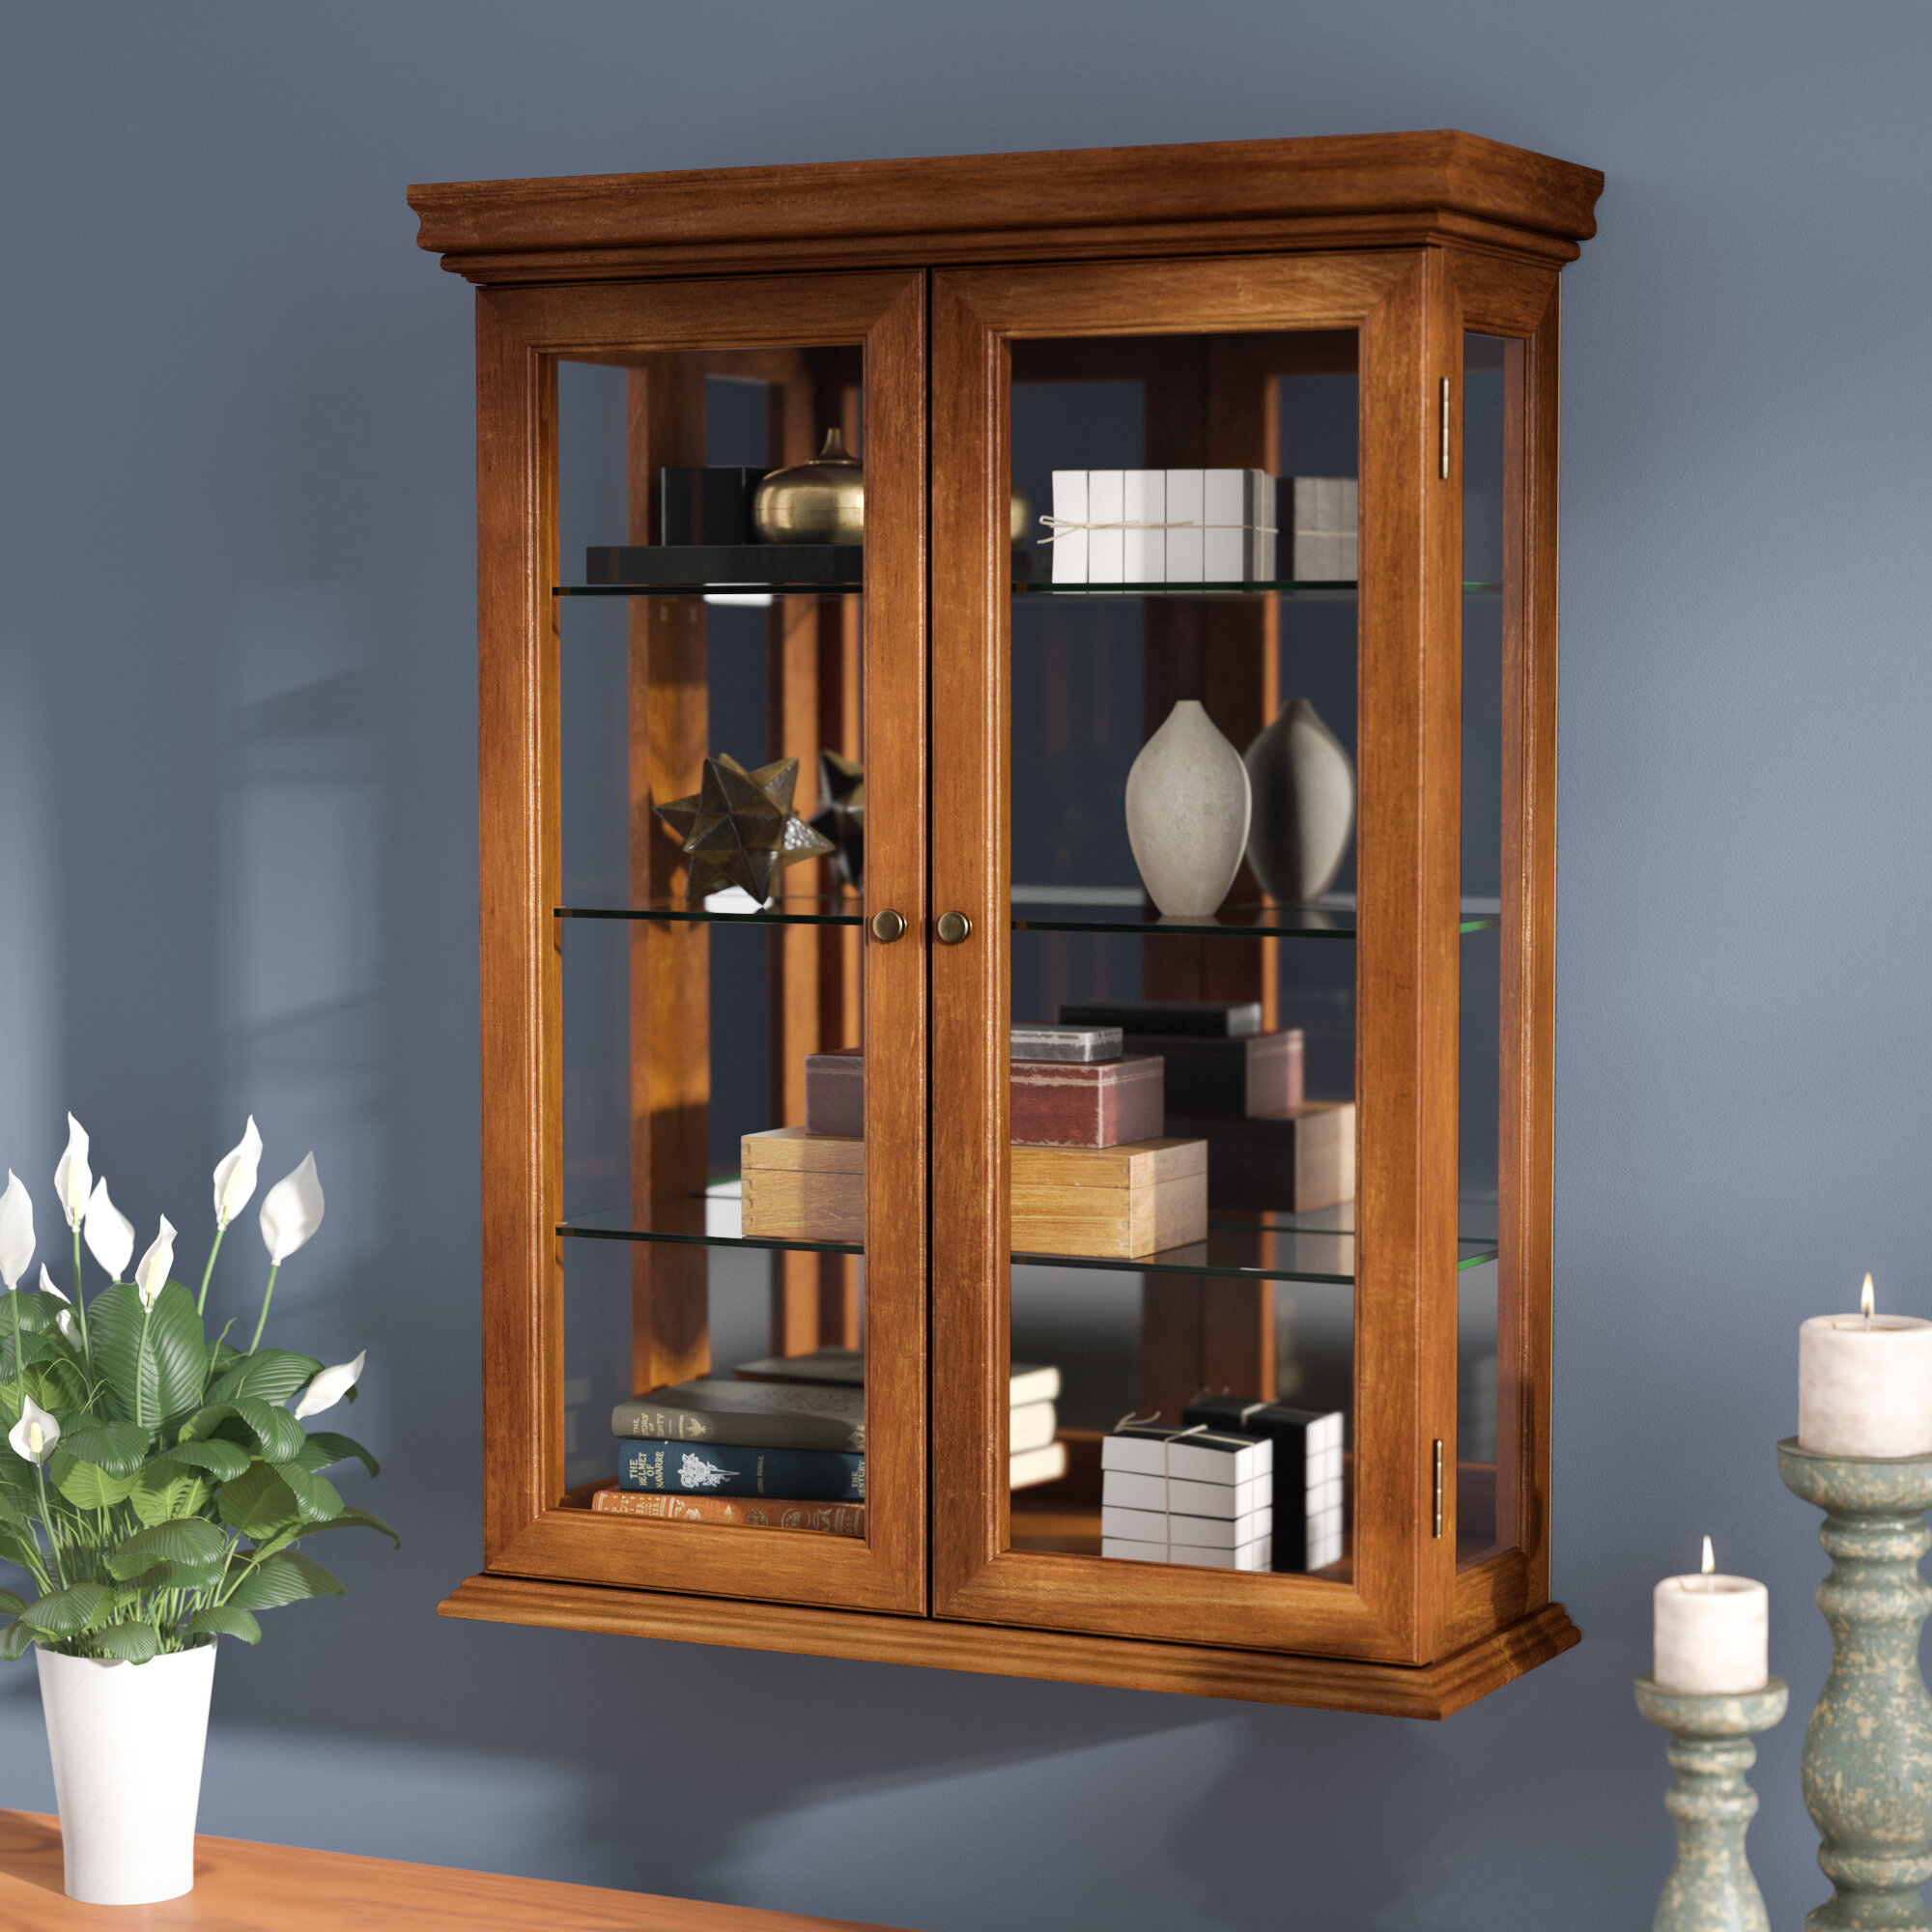 Design Toscano Country Tuscan Wall Mounted Curio Cabinet Reviews Wayfair Co Uk